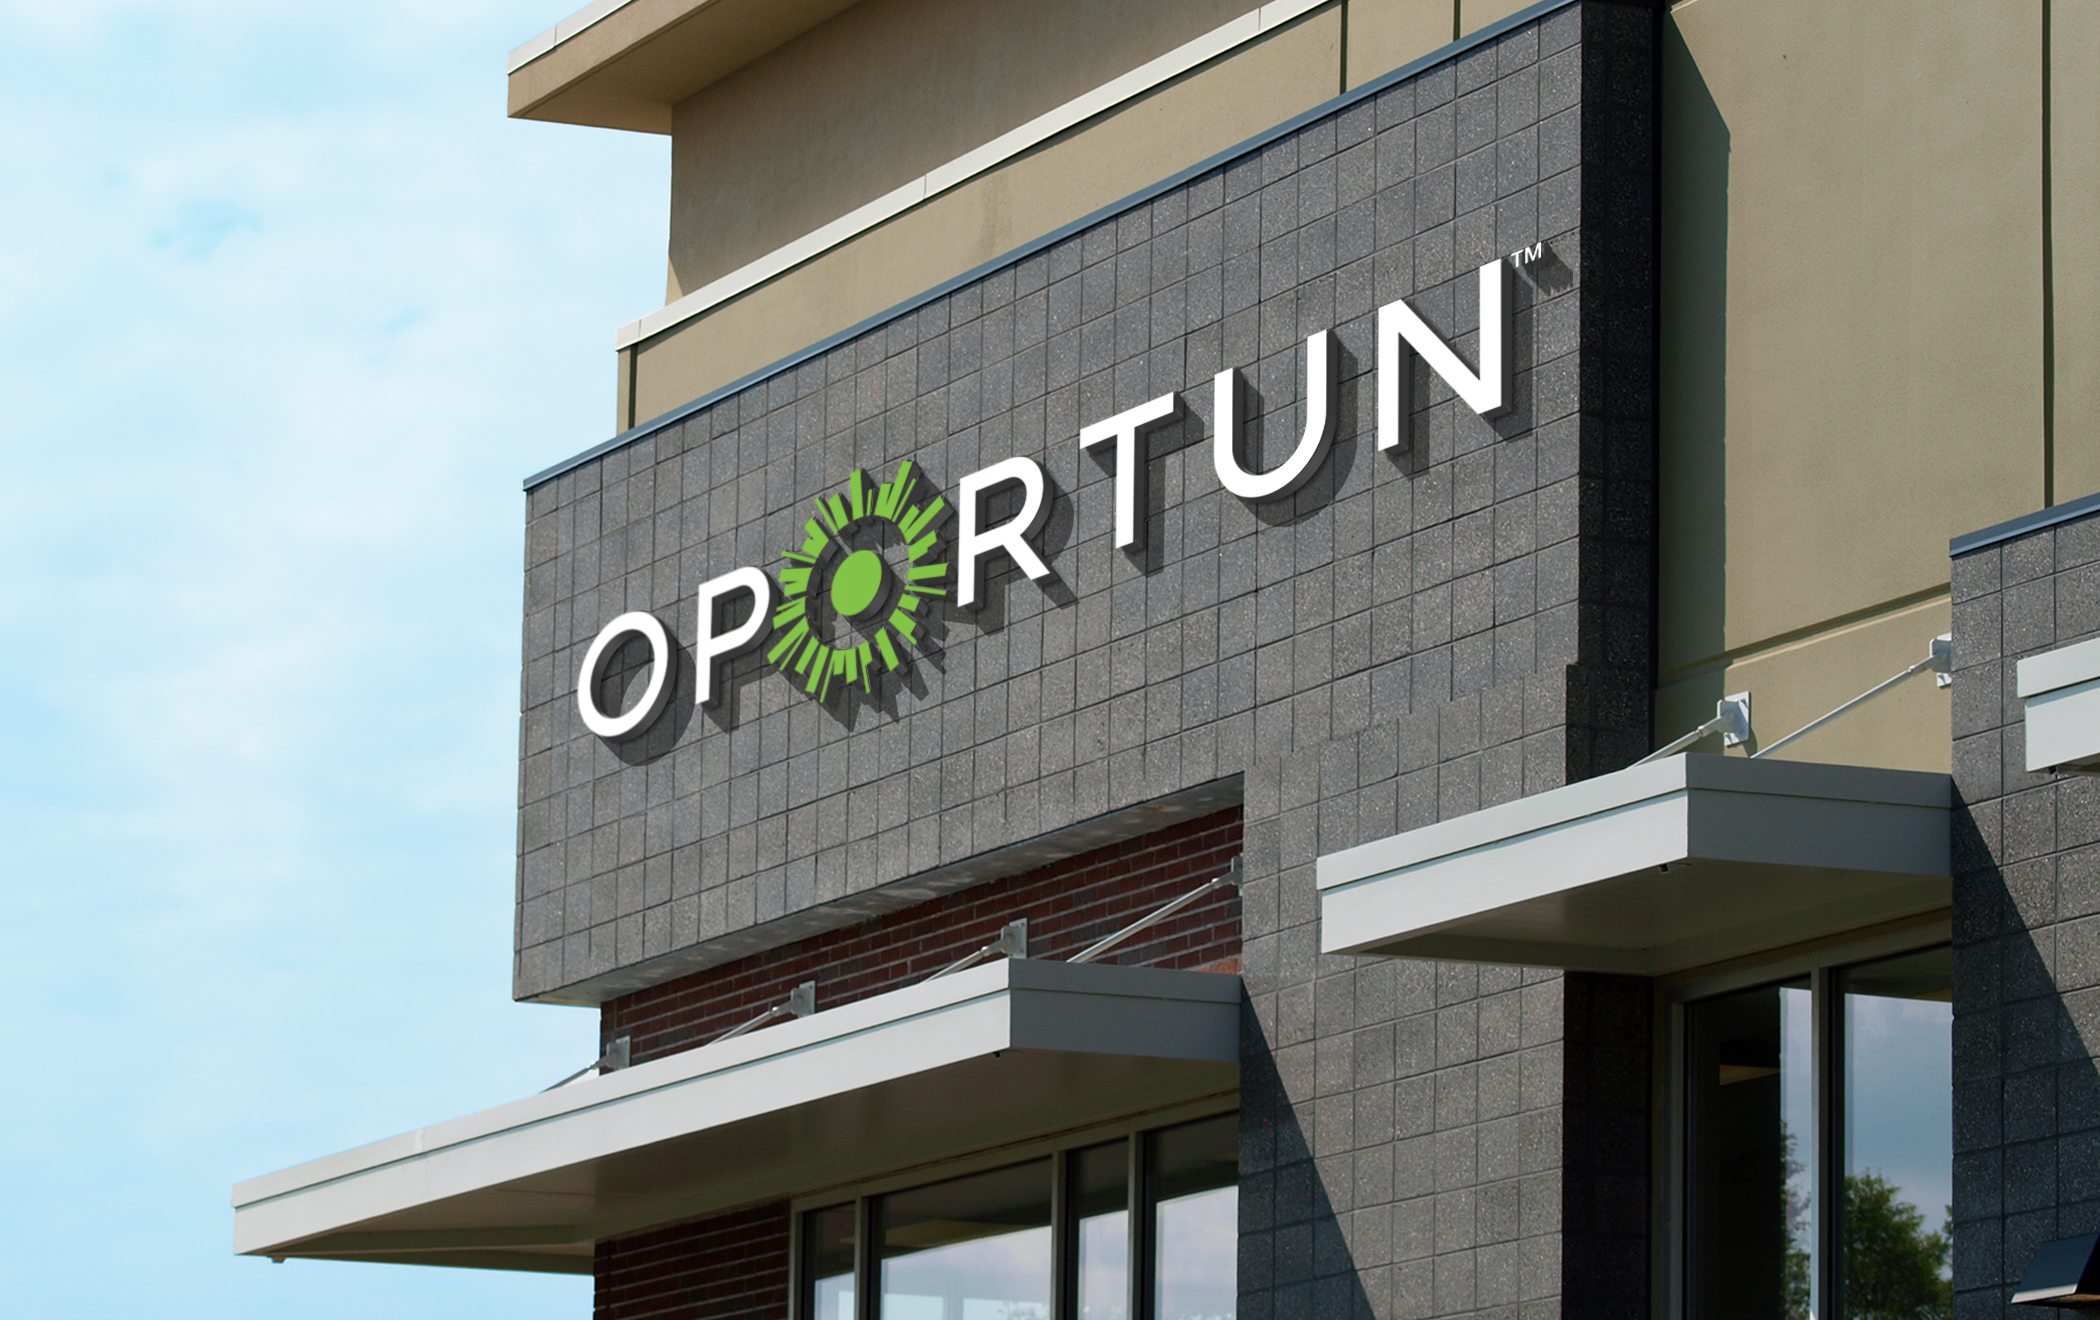 The Oportun logo on the large exterior sign on the company's headquarters.